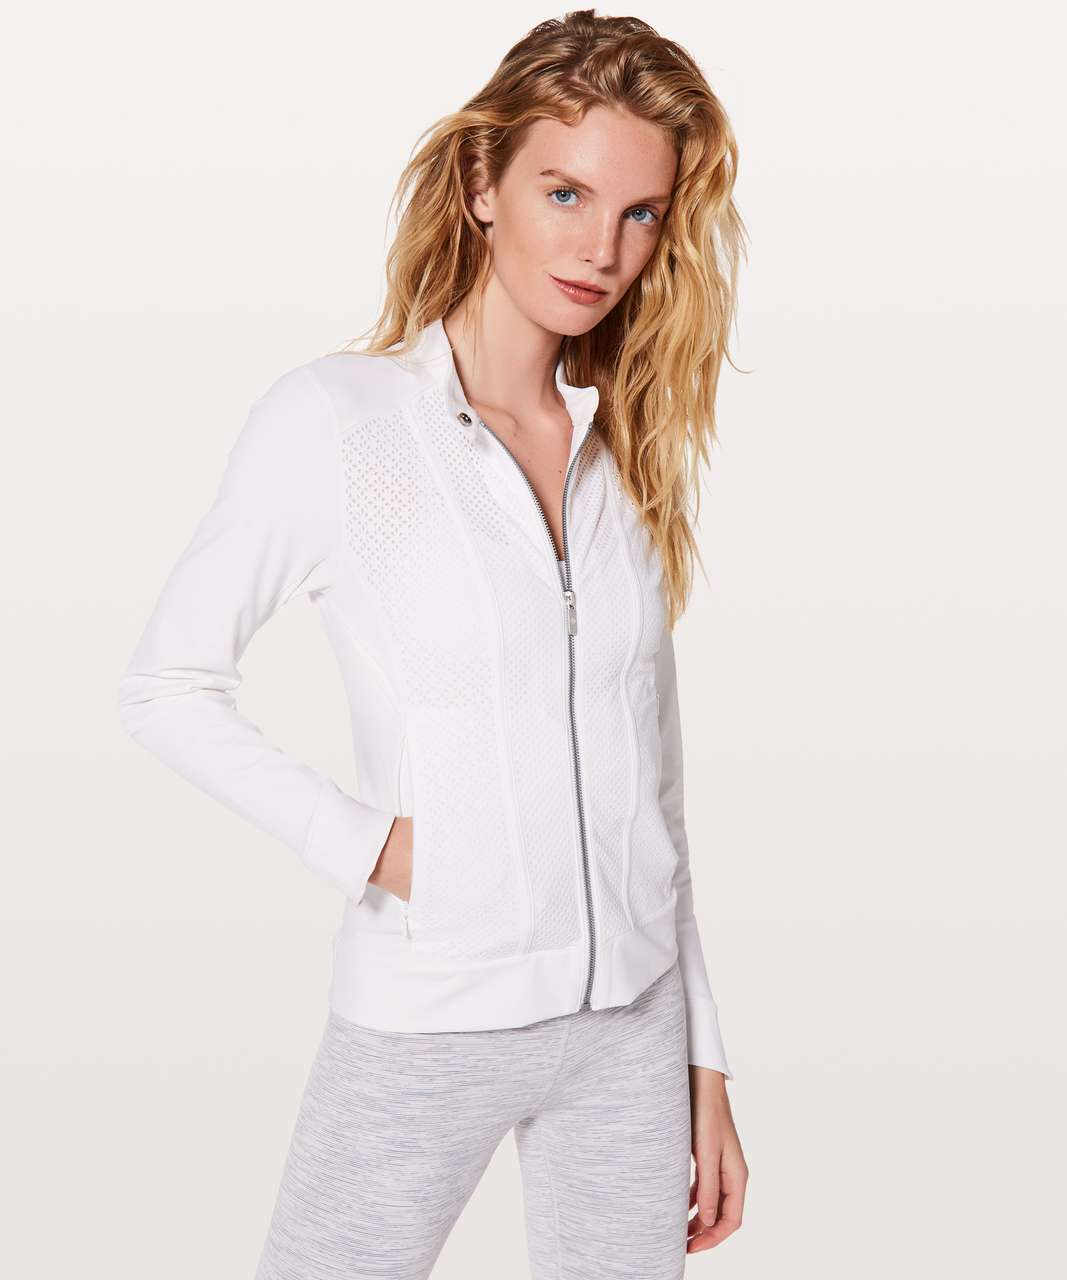 Lululemon Get Your Peek On Jacket - White